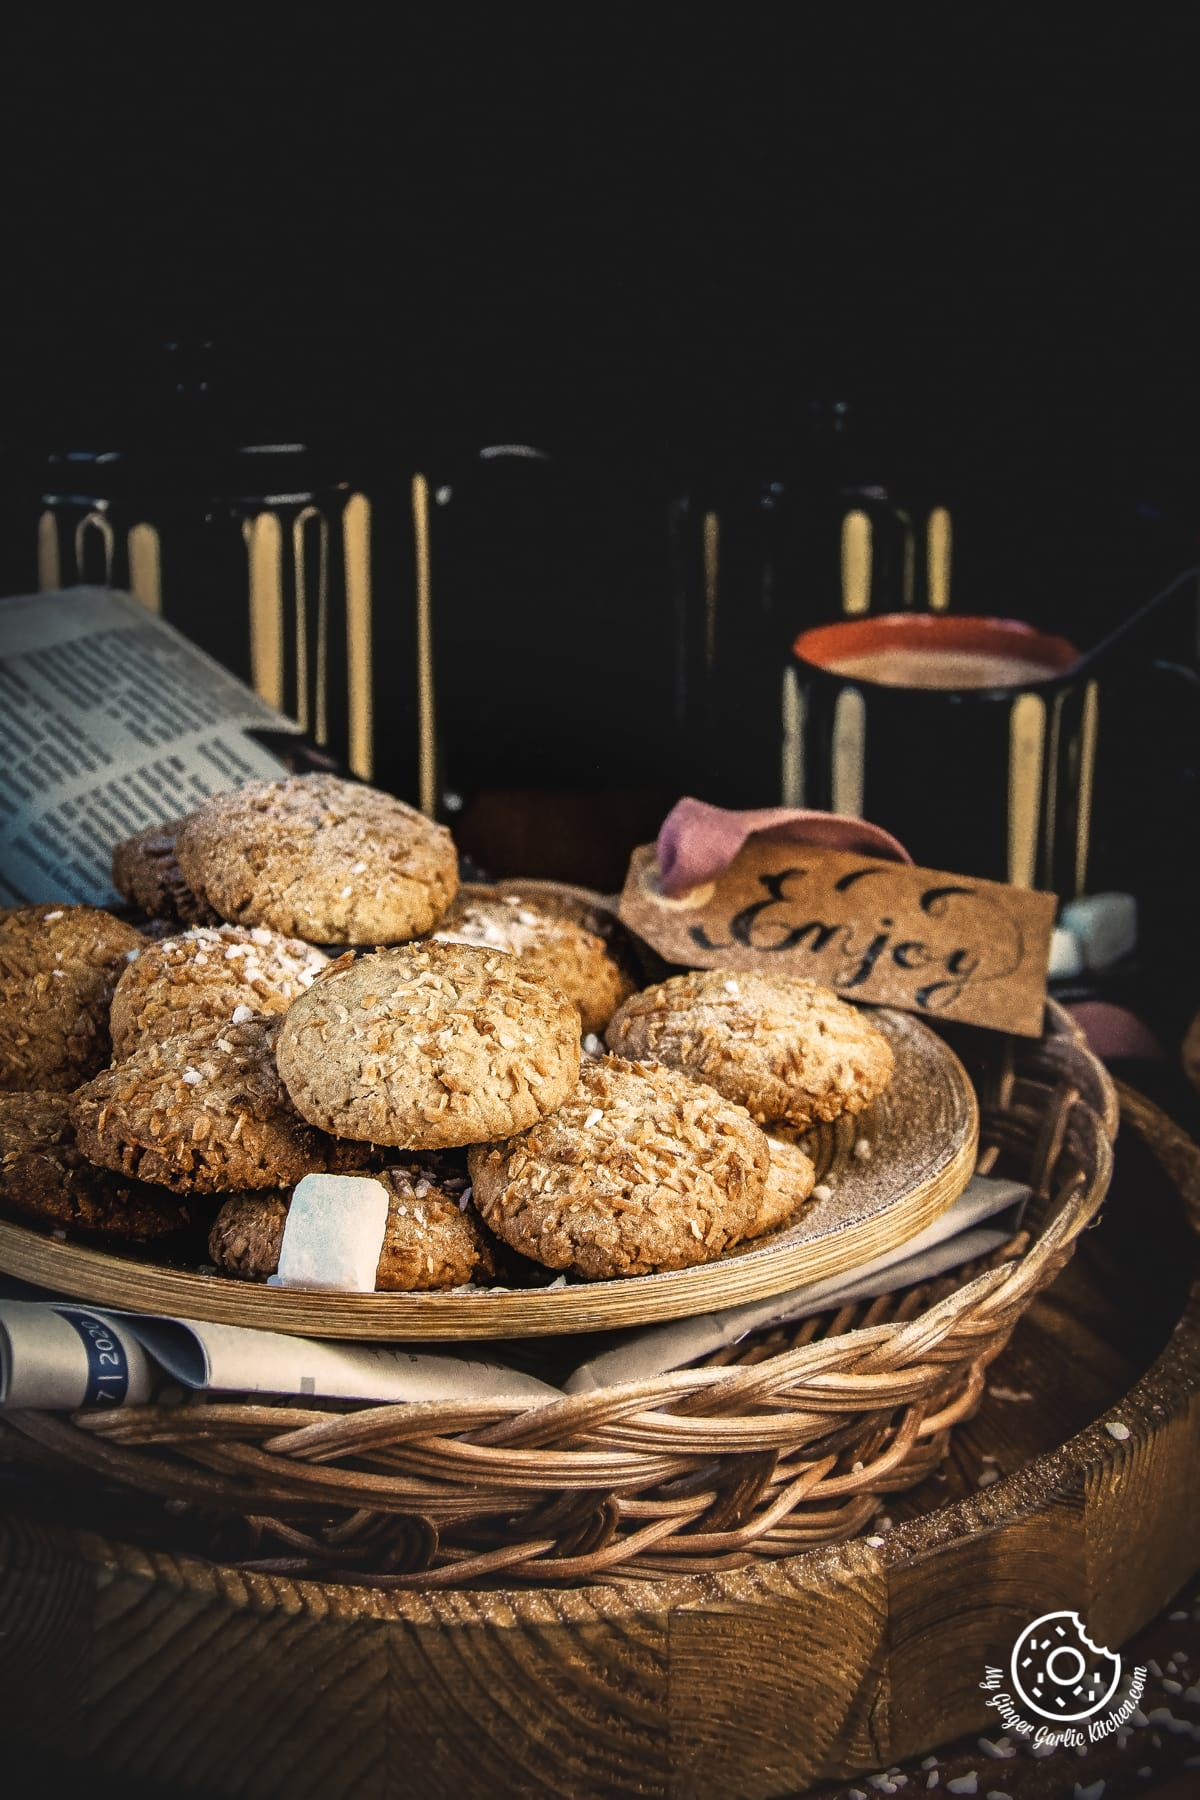 coconut cookies in a plate and black coffee mugs in the background